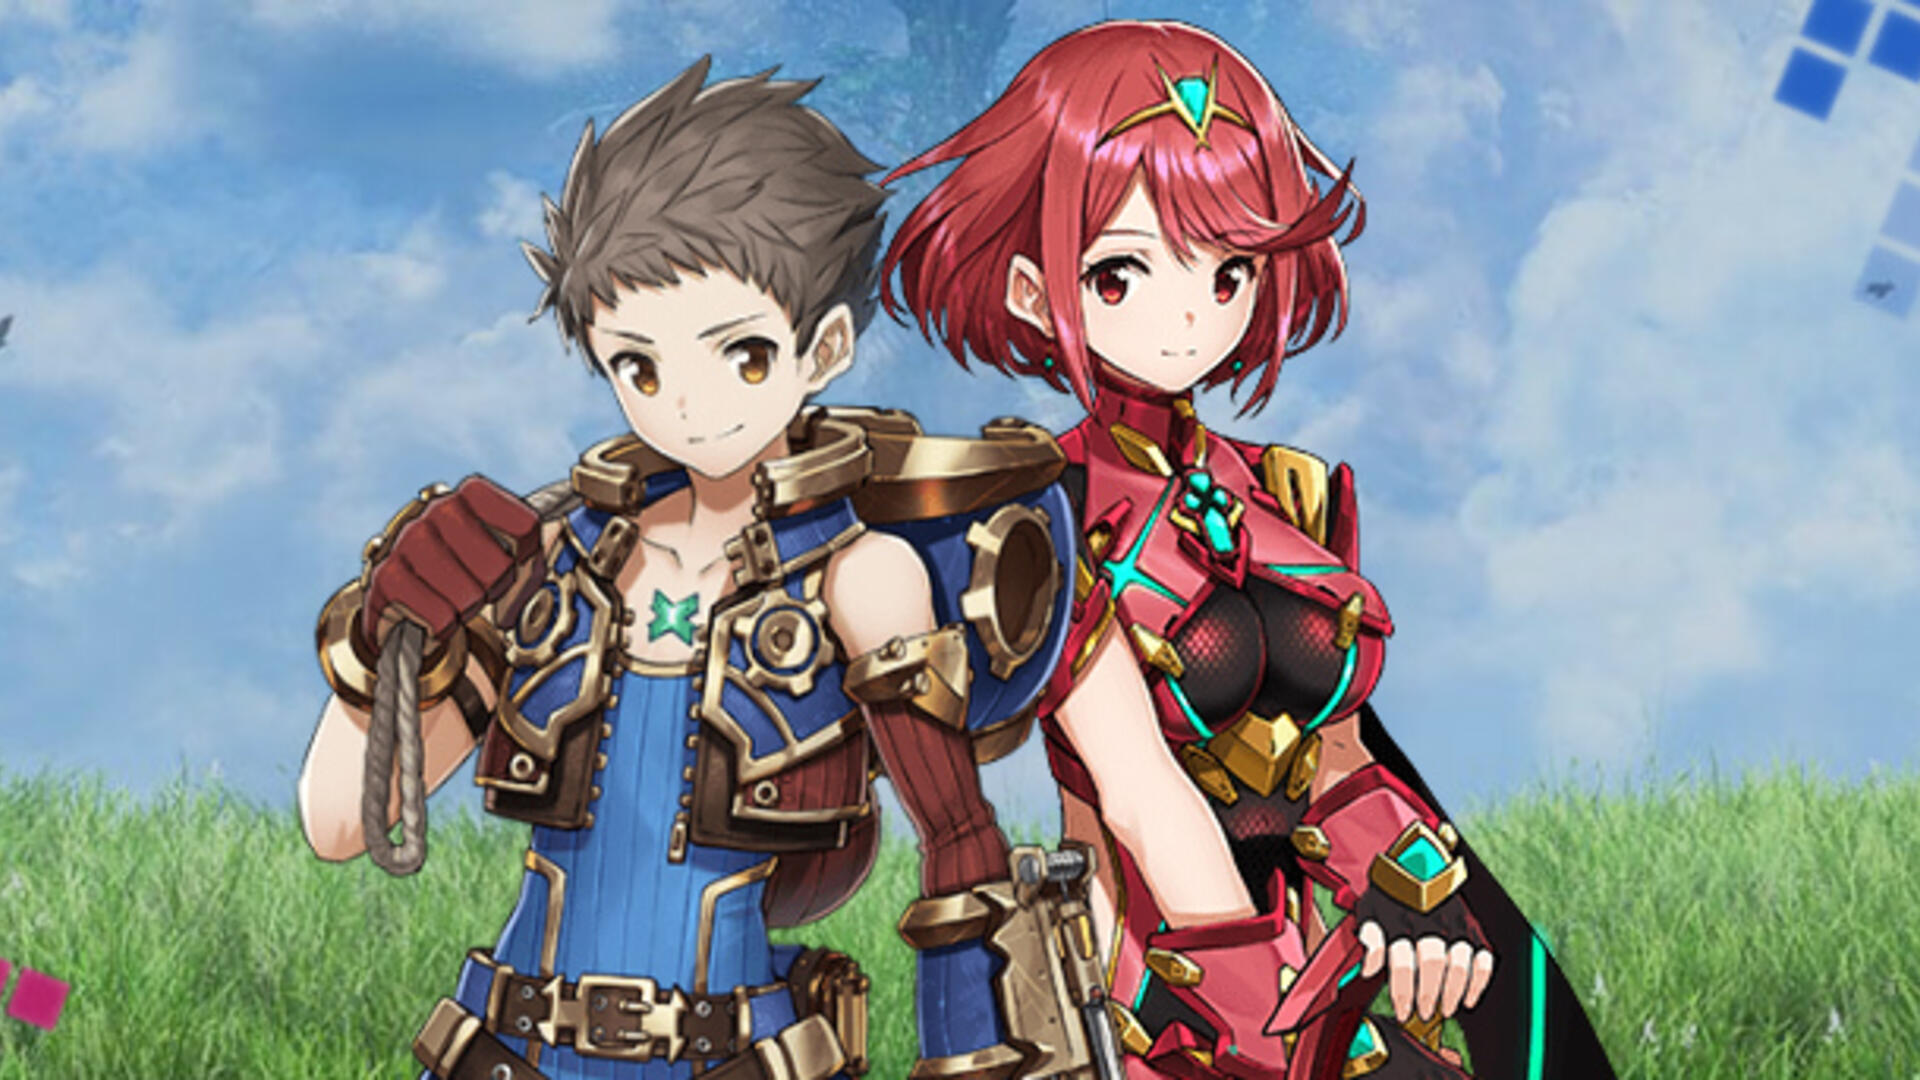 Xenoblade Chronicles 2 Voice Actor Seems to Be Teasing More Story DLC